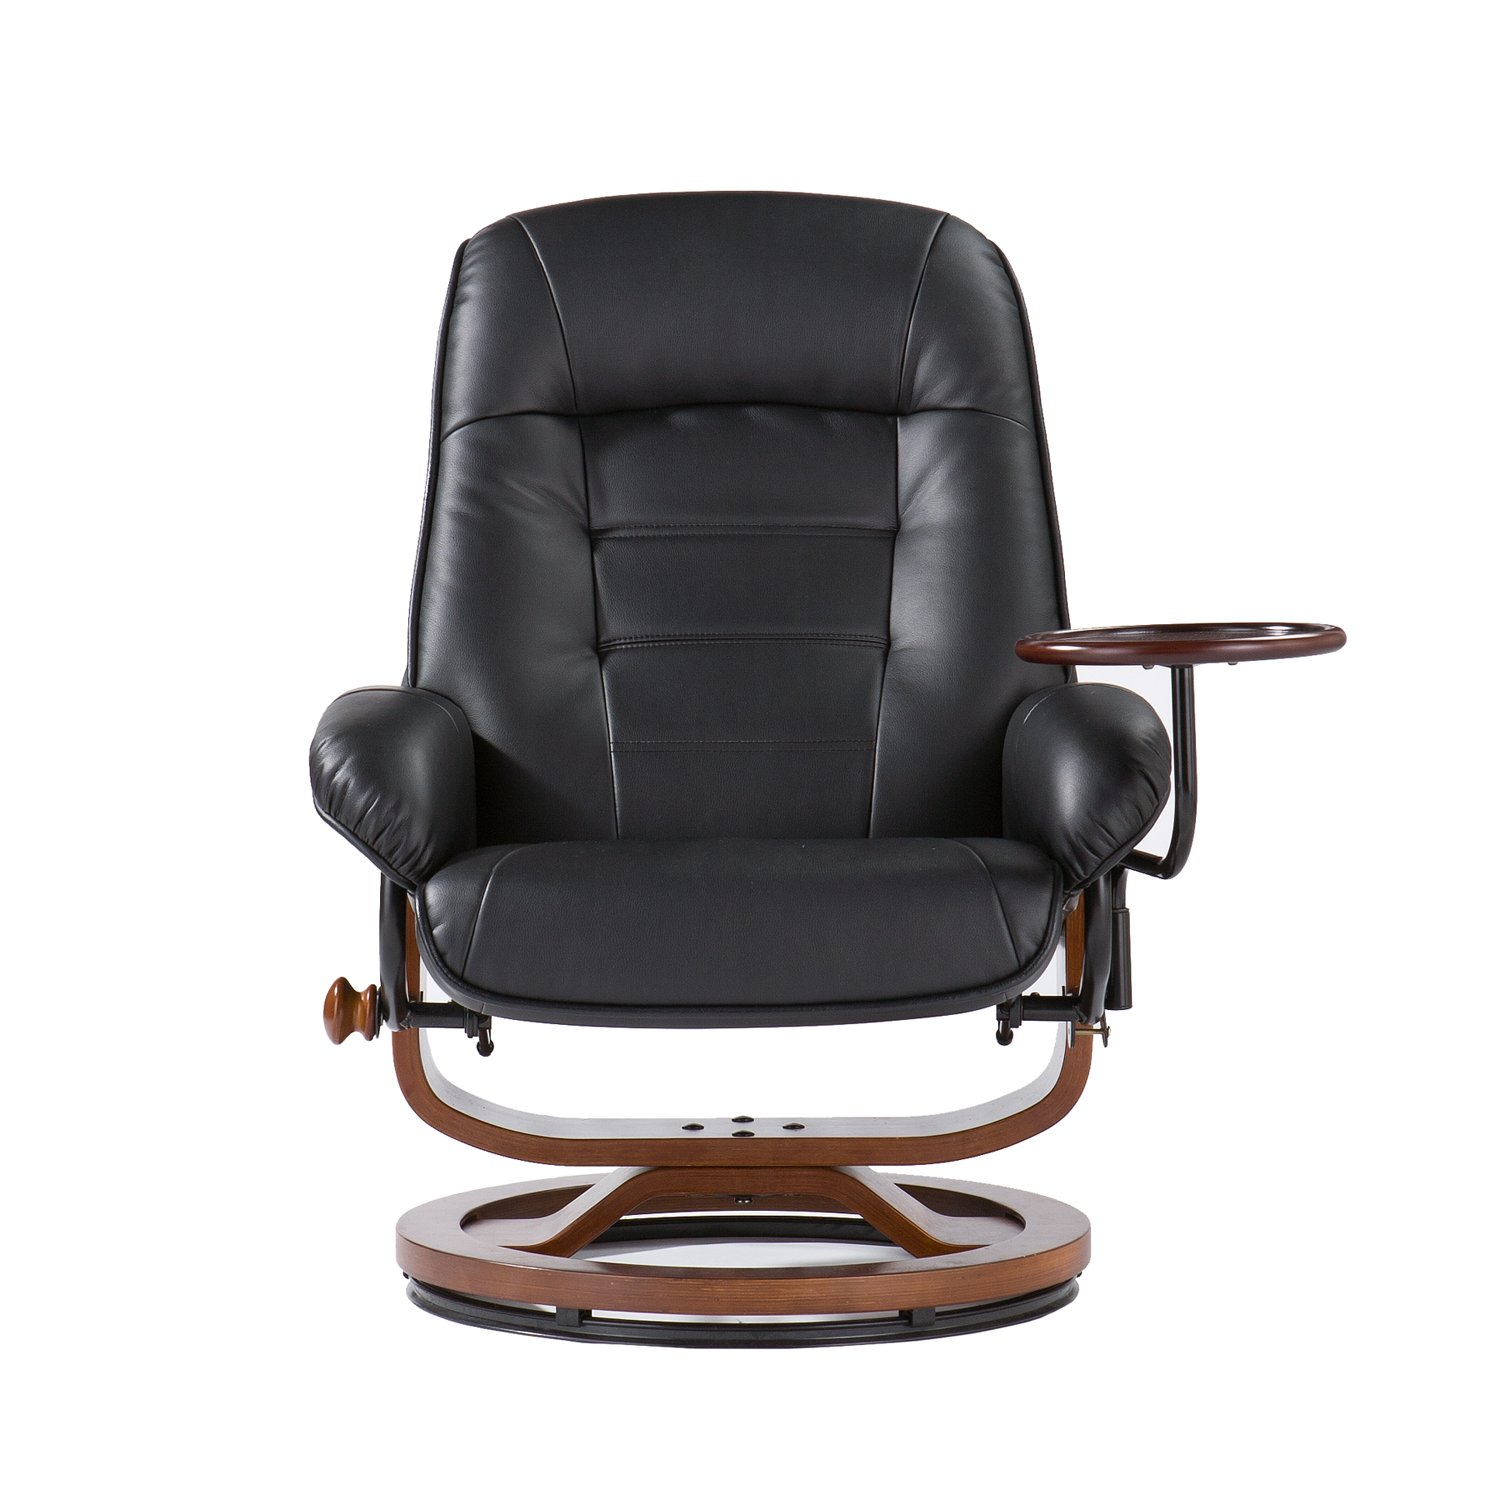 Adjustable Black Leather Recliner And Ottoman Office